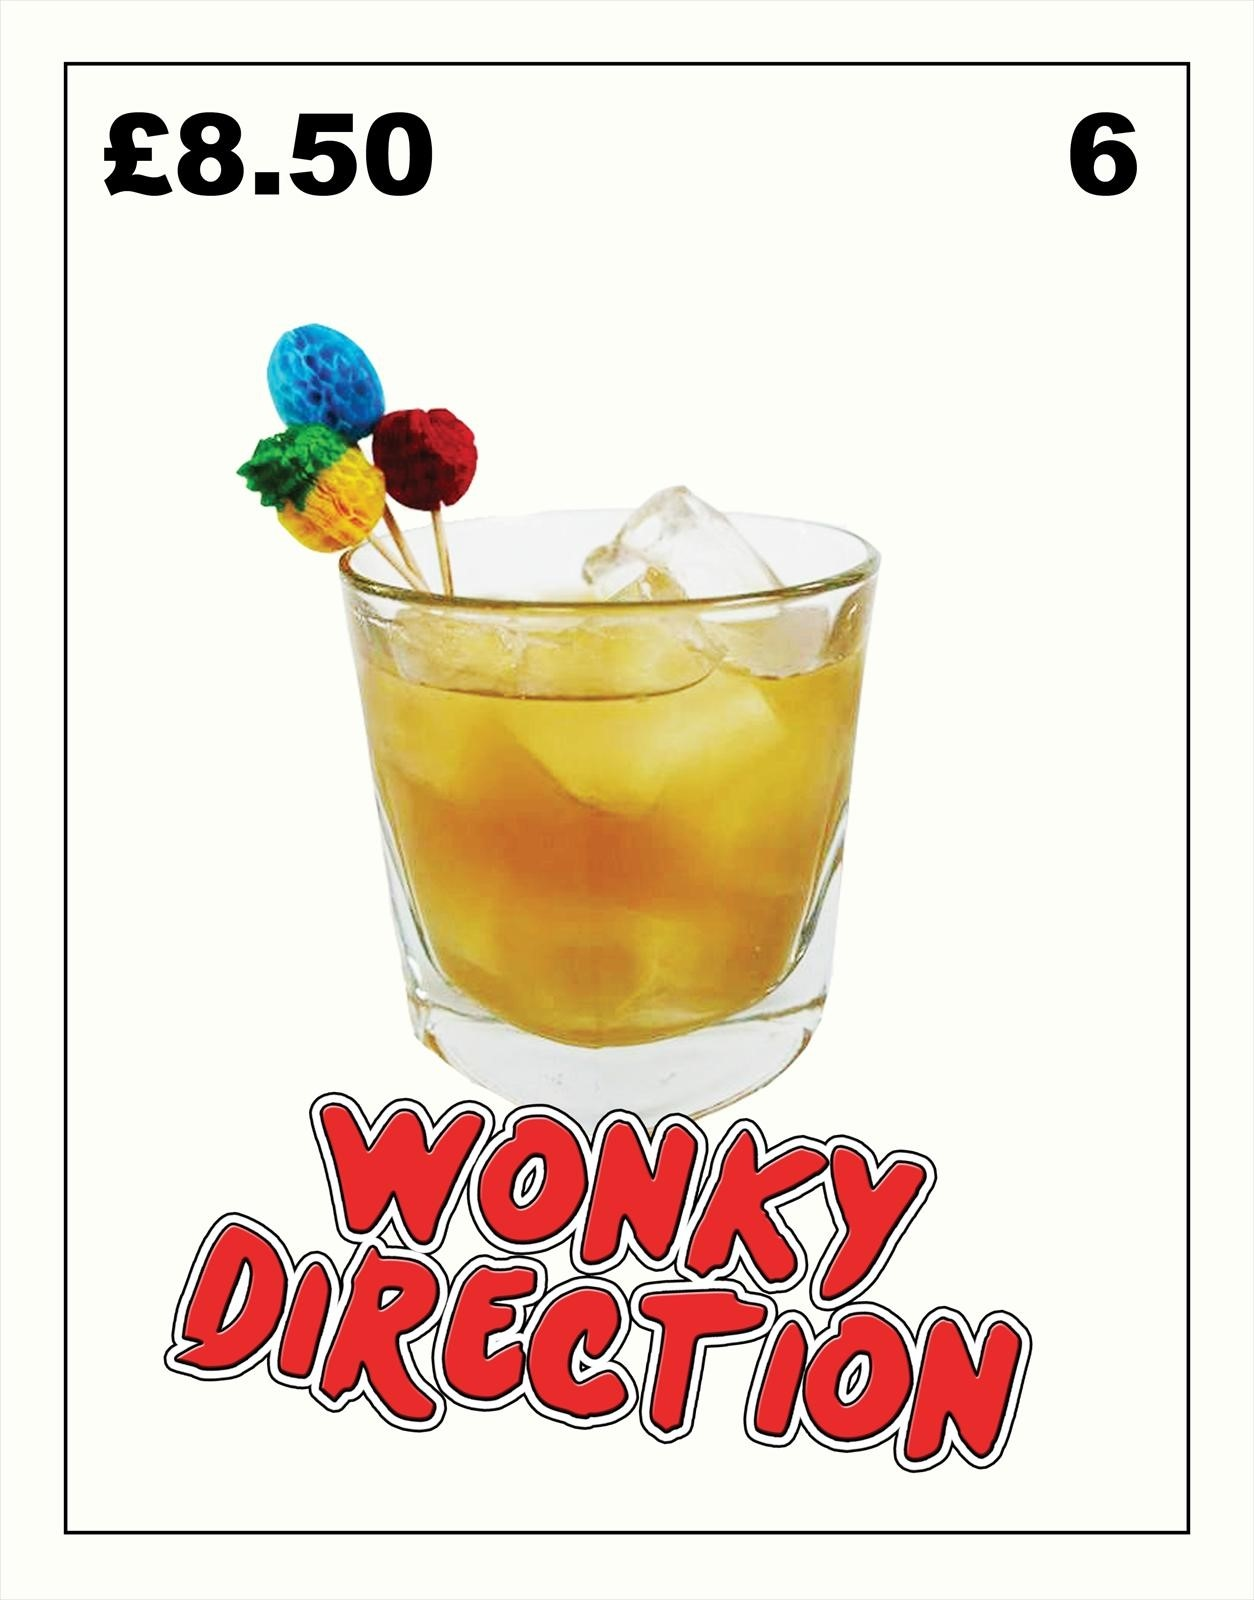 Wonky Direction by TART for Bleach Bar